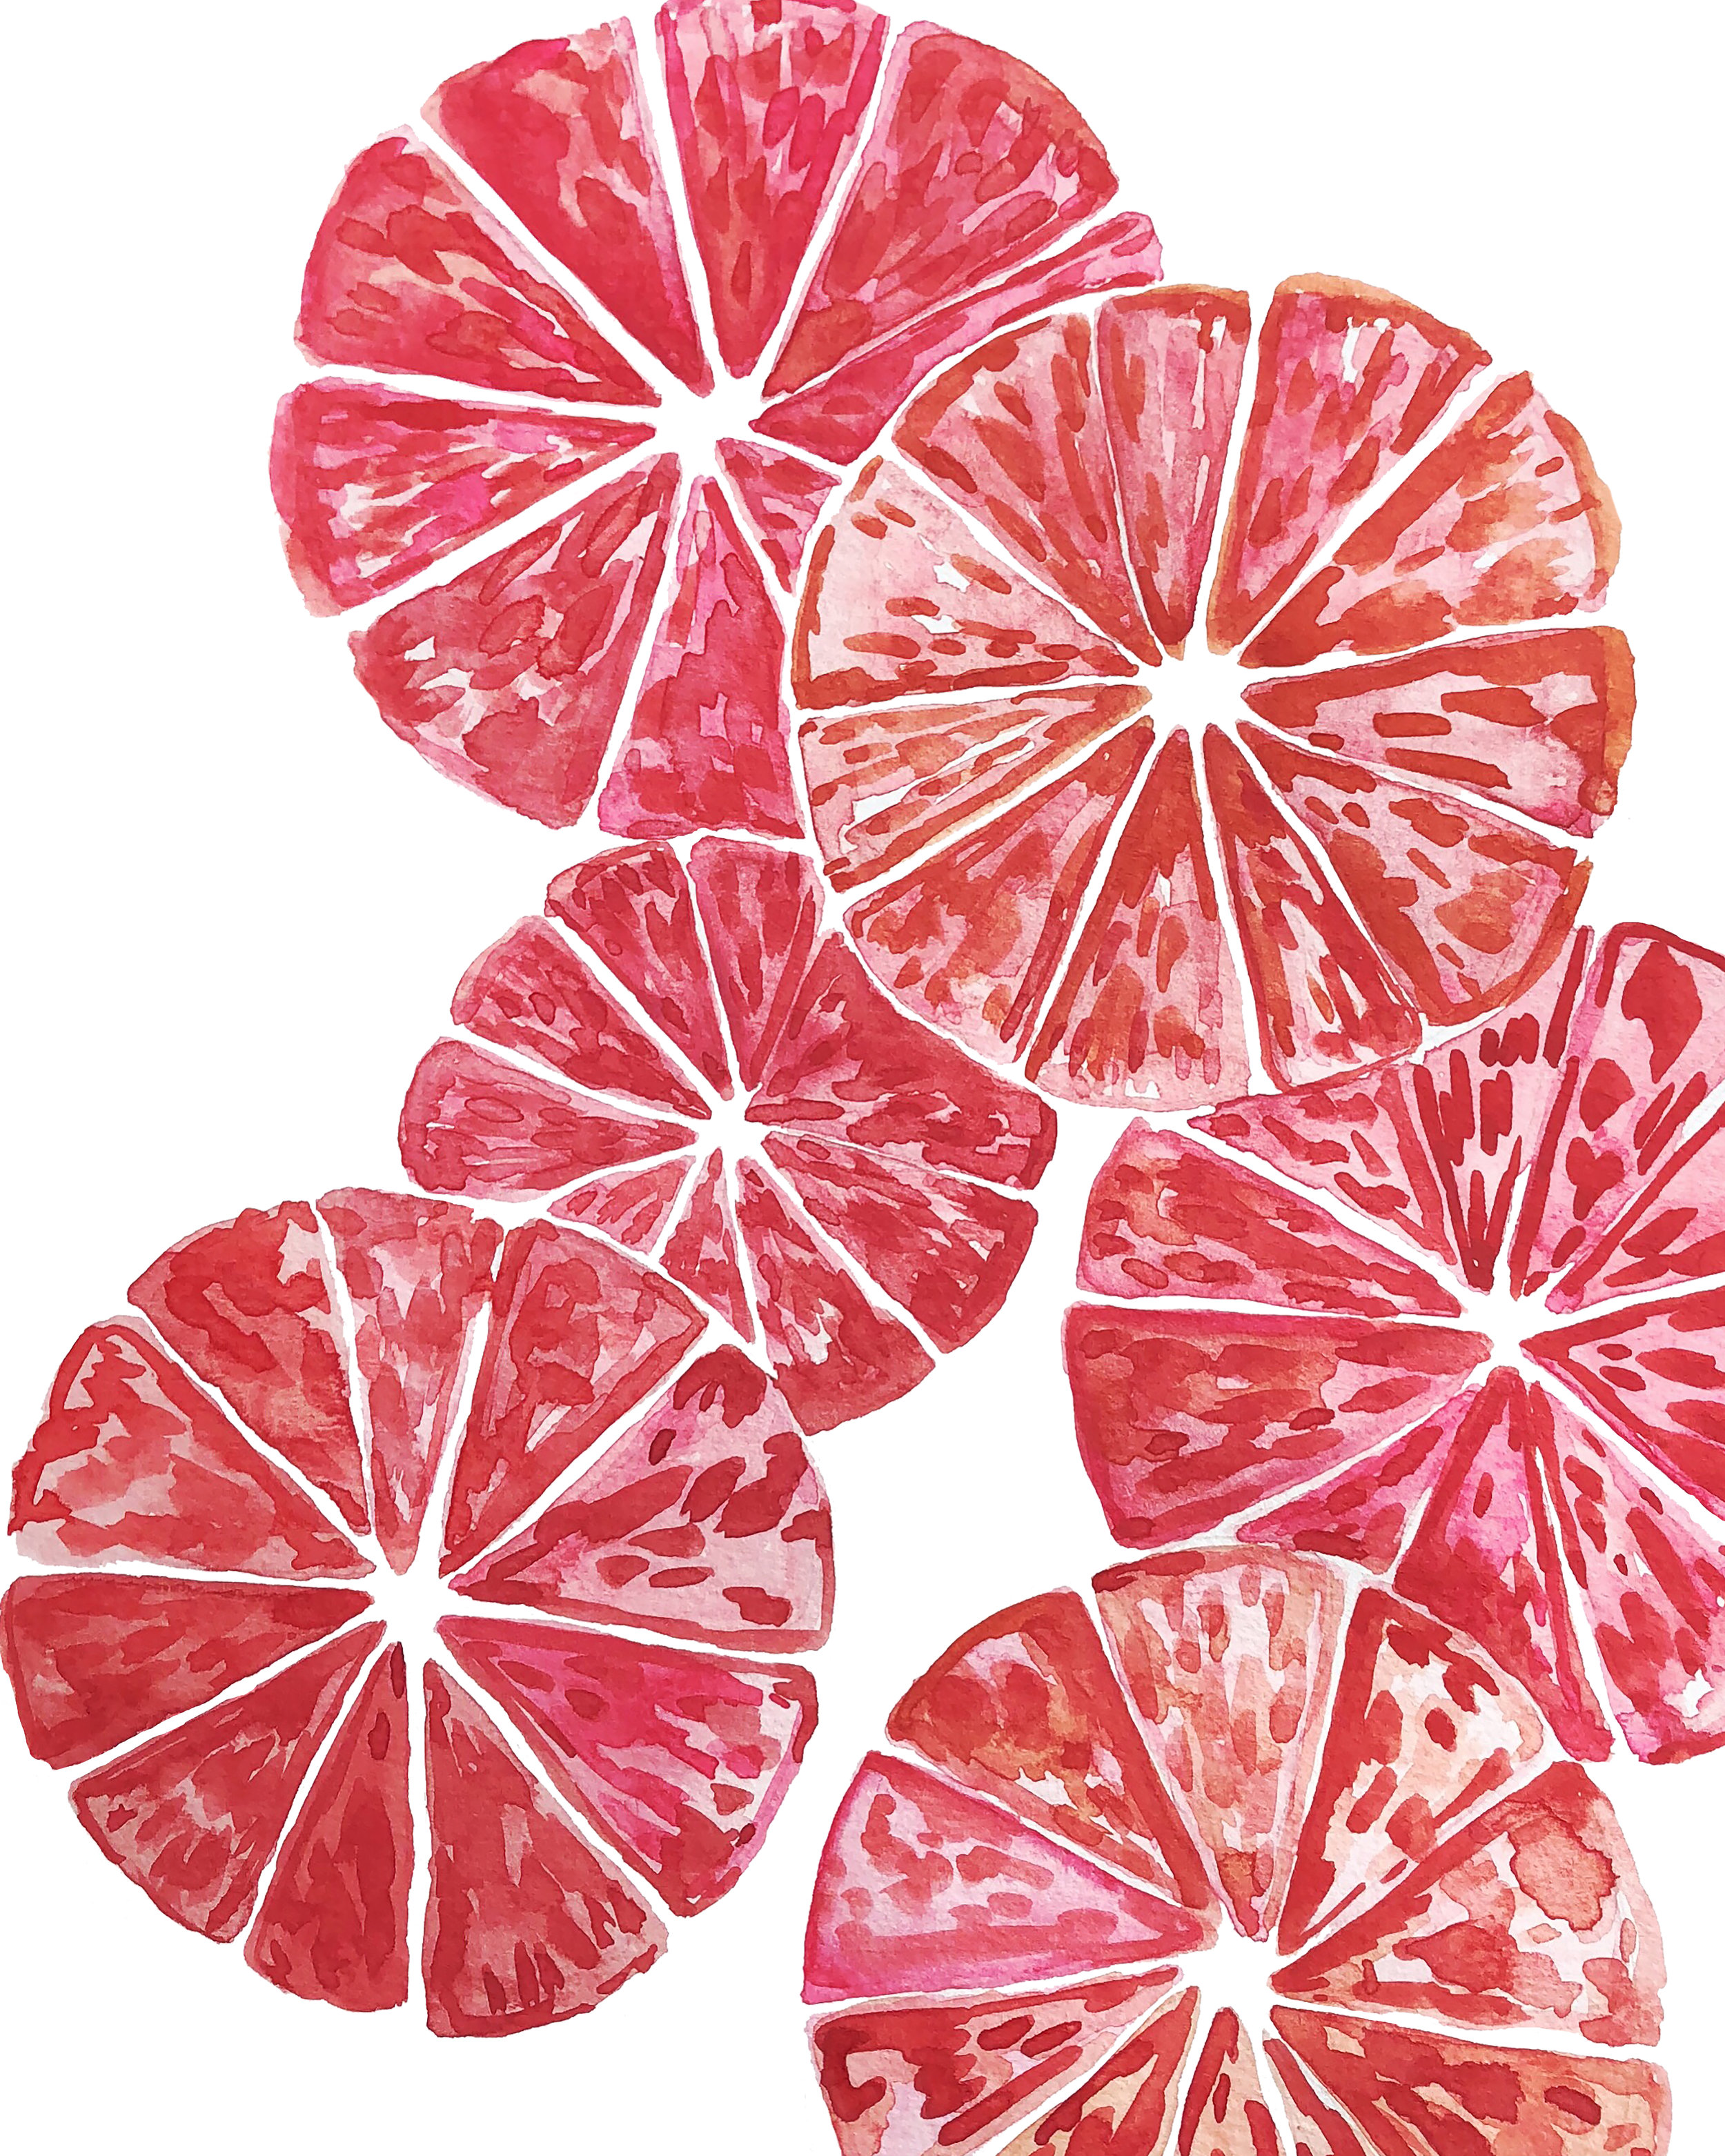 Grapefruits_Print.jpg